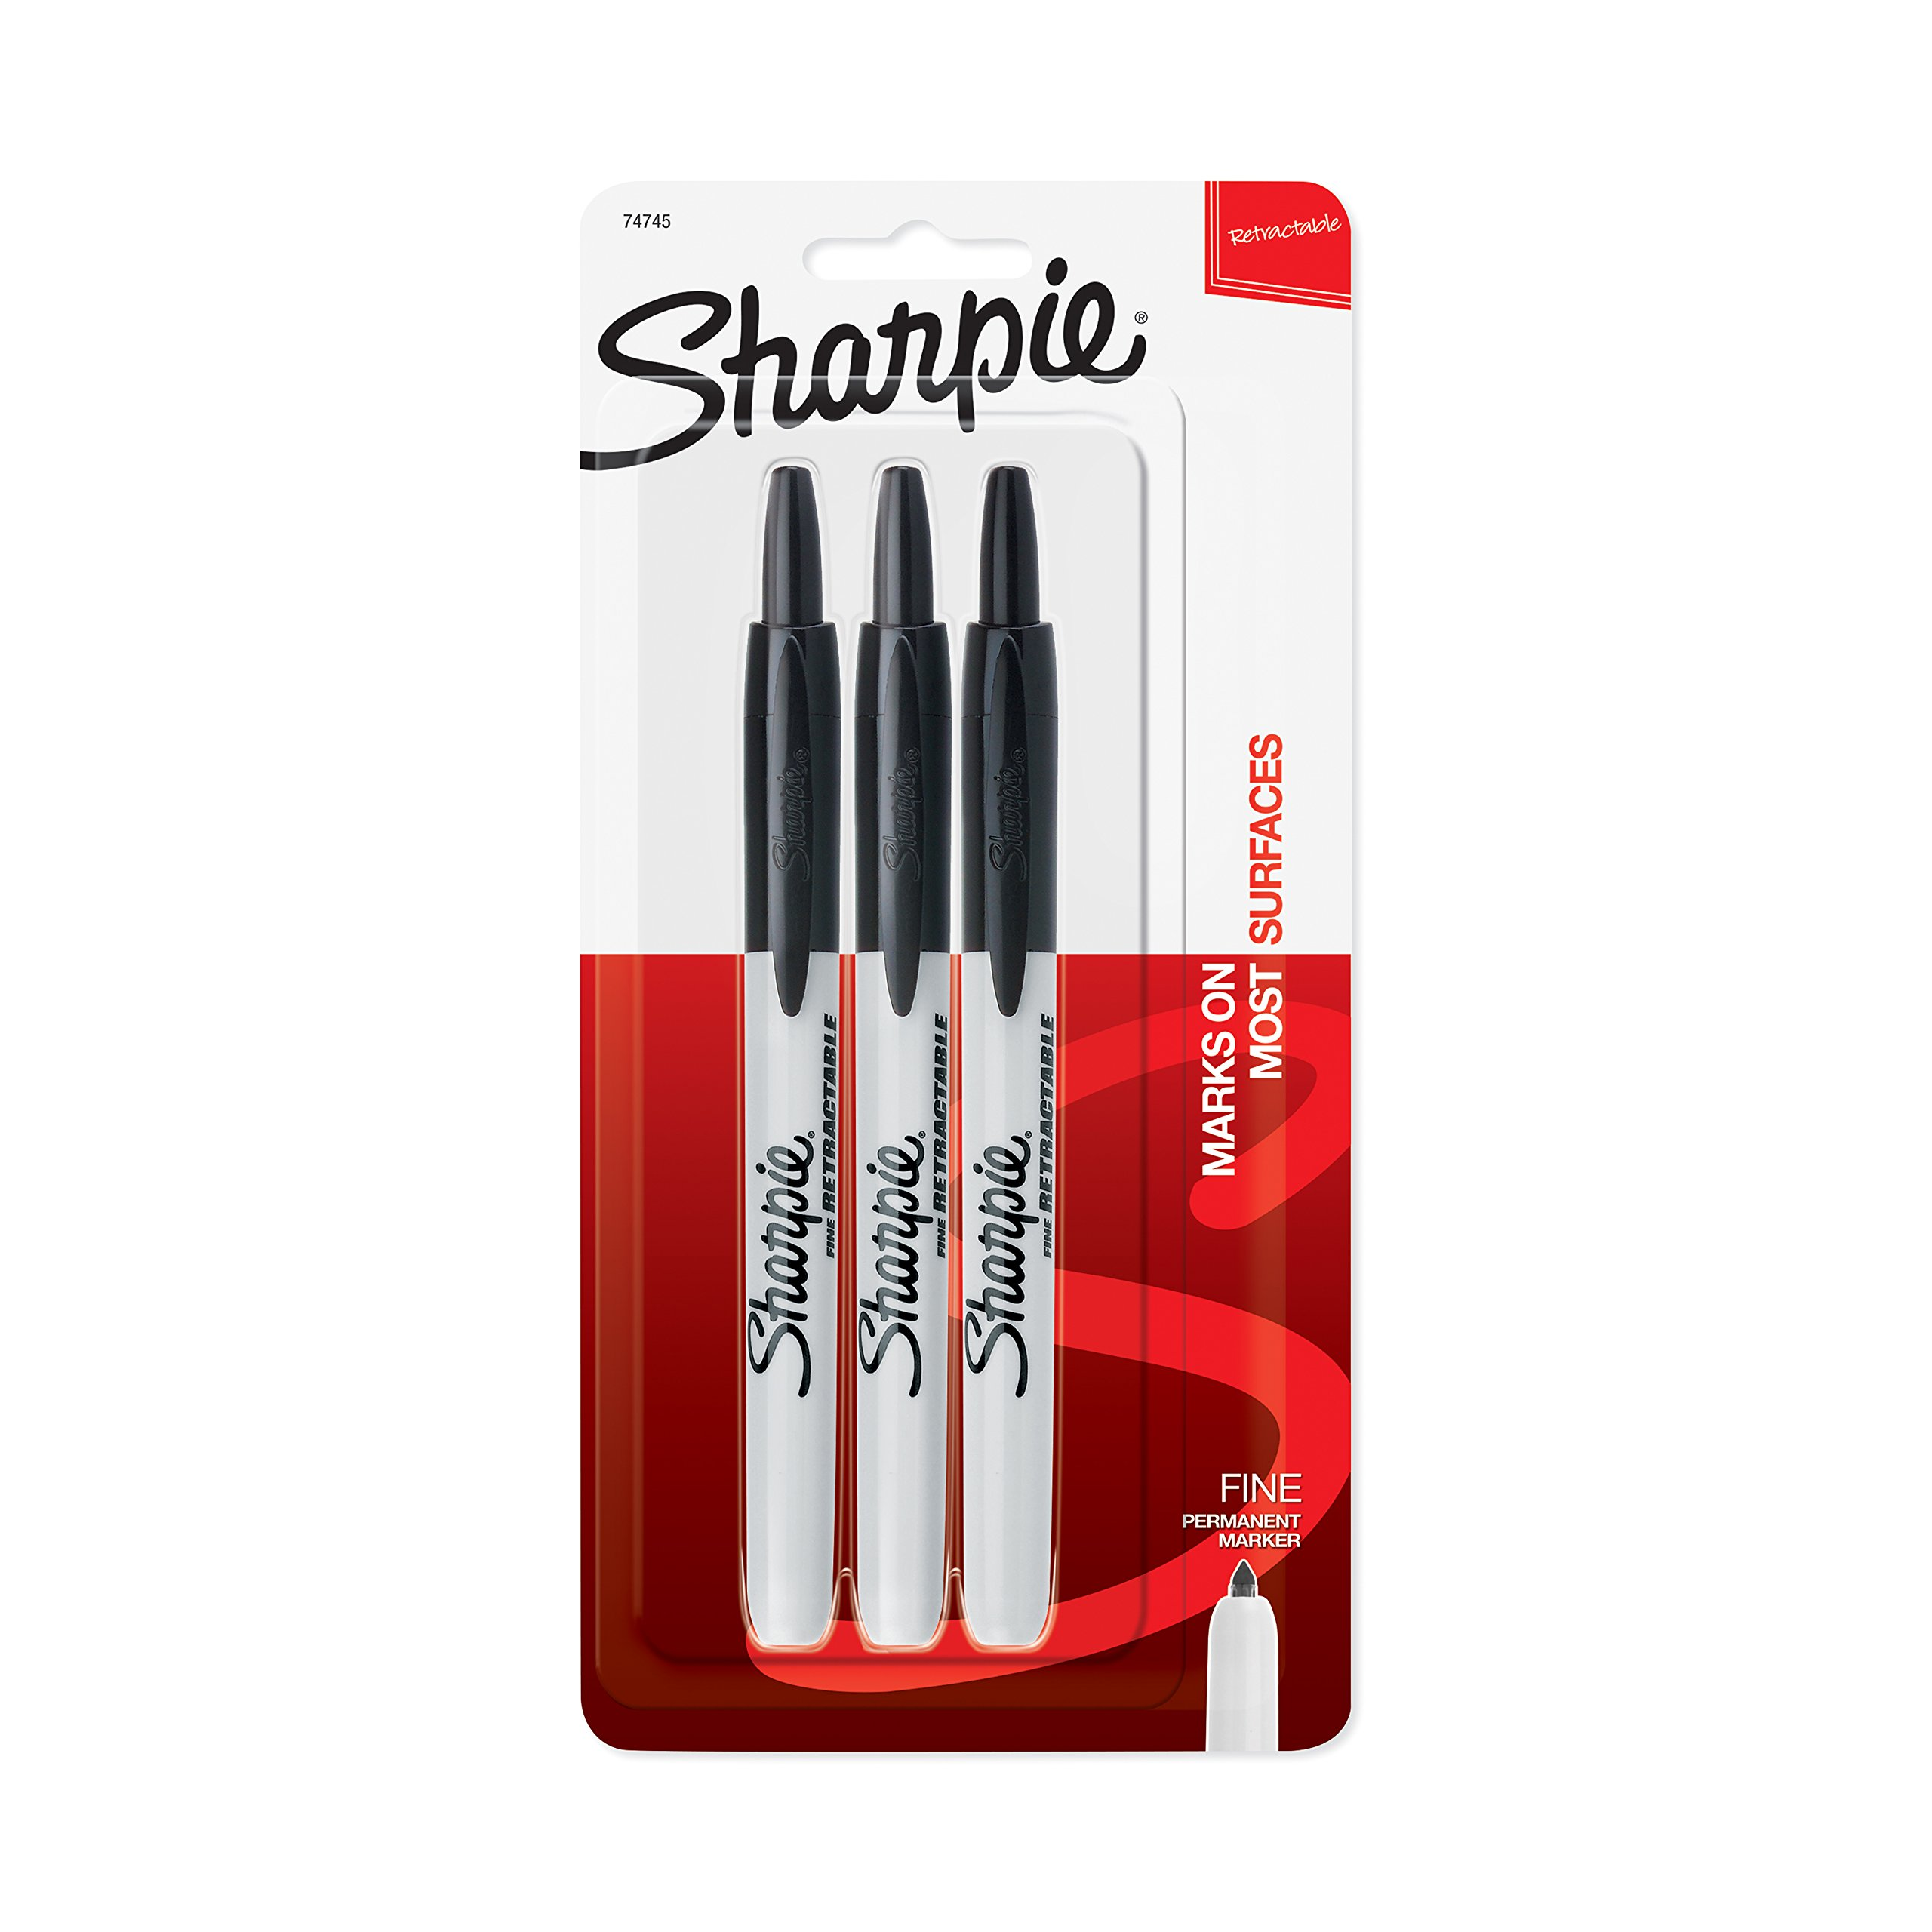 Sharpie Retractable Permanent Markers, Fine Point, Black, 3 Count